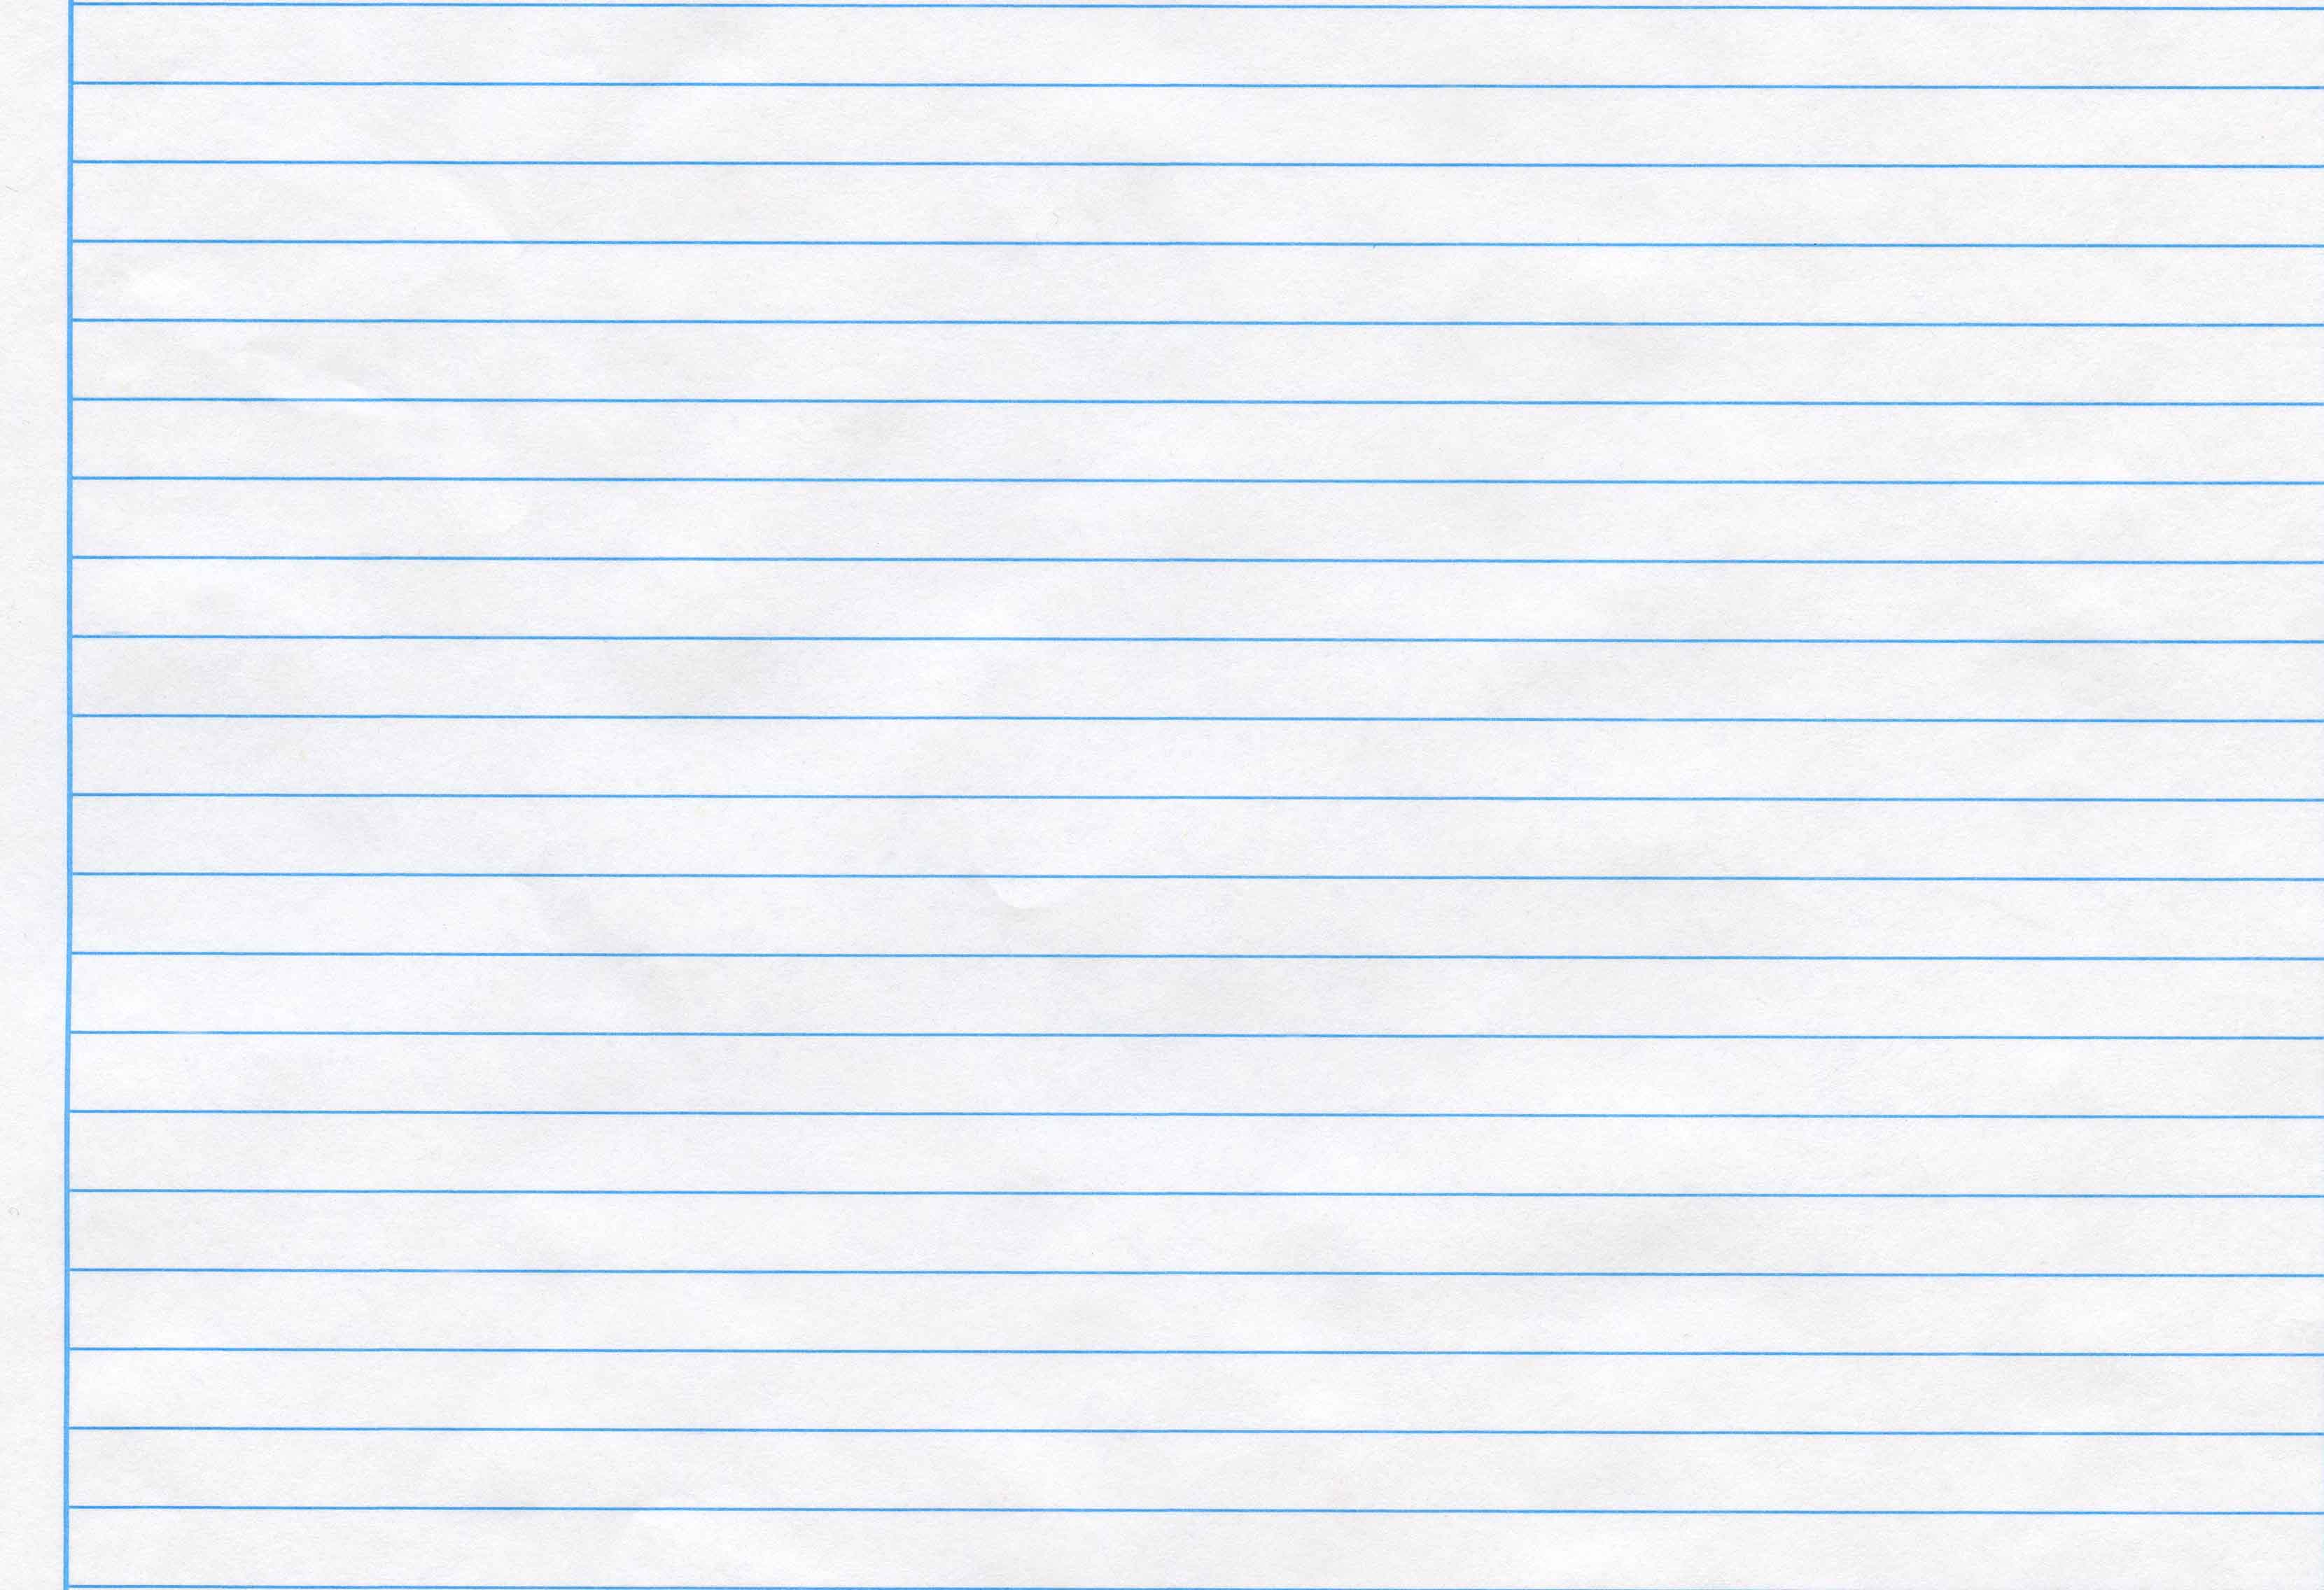 Winter lined paper